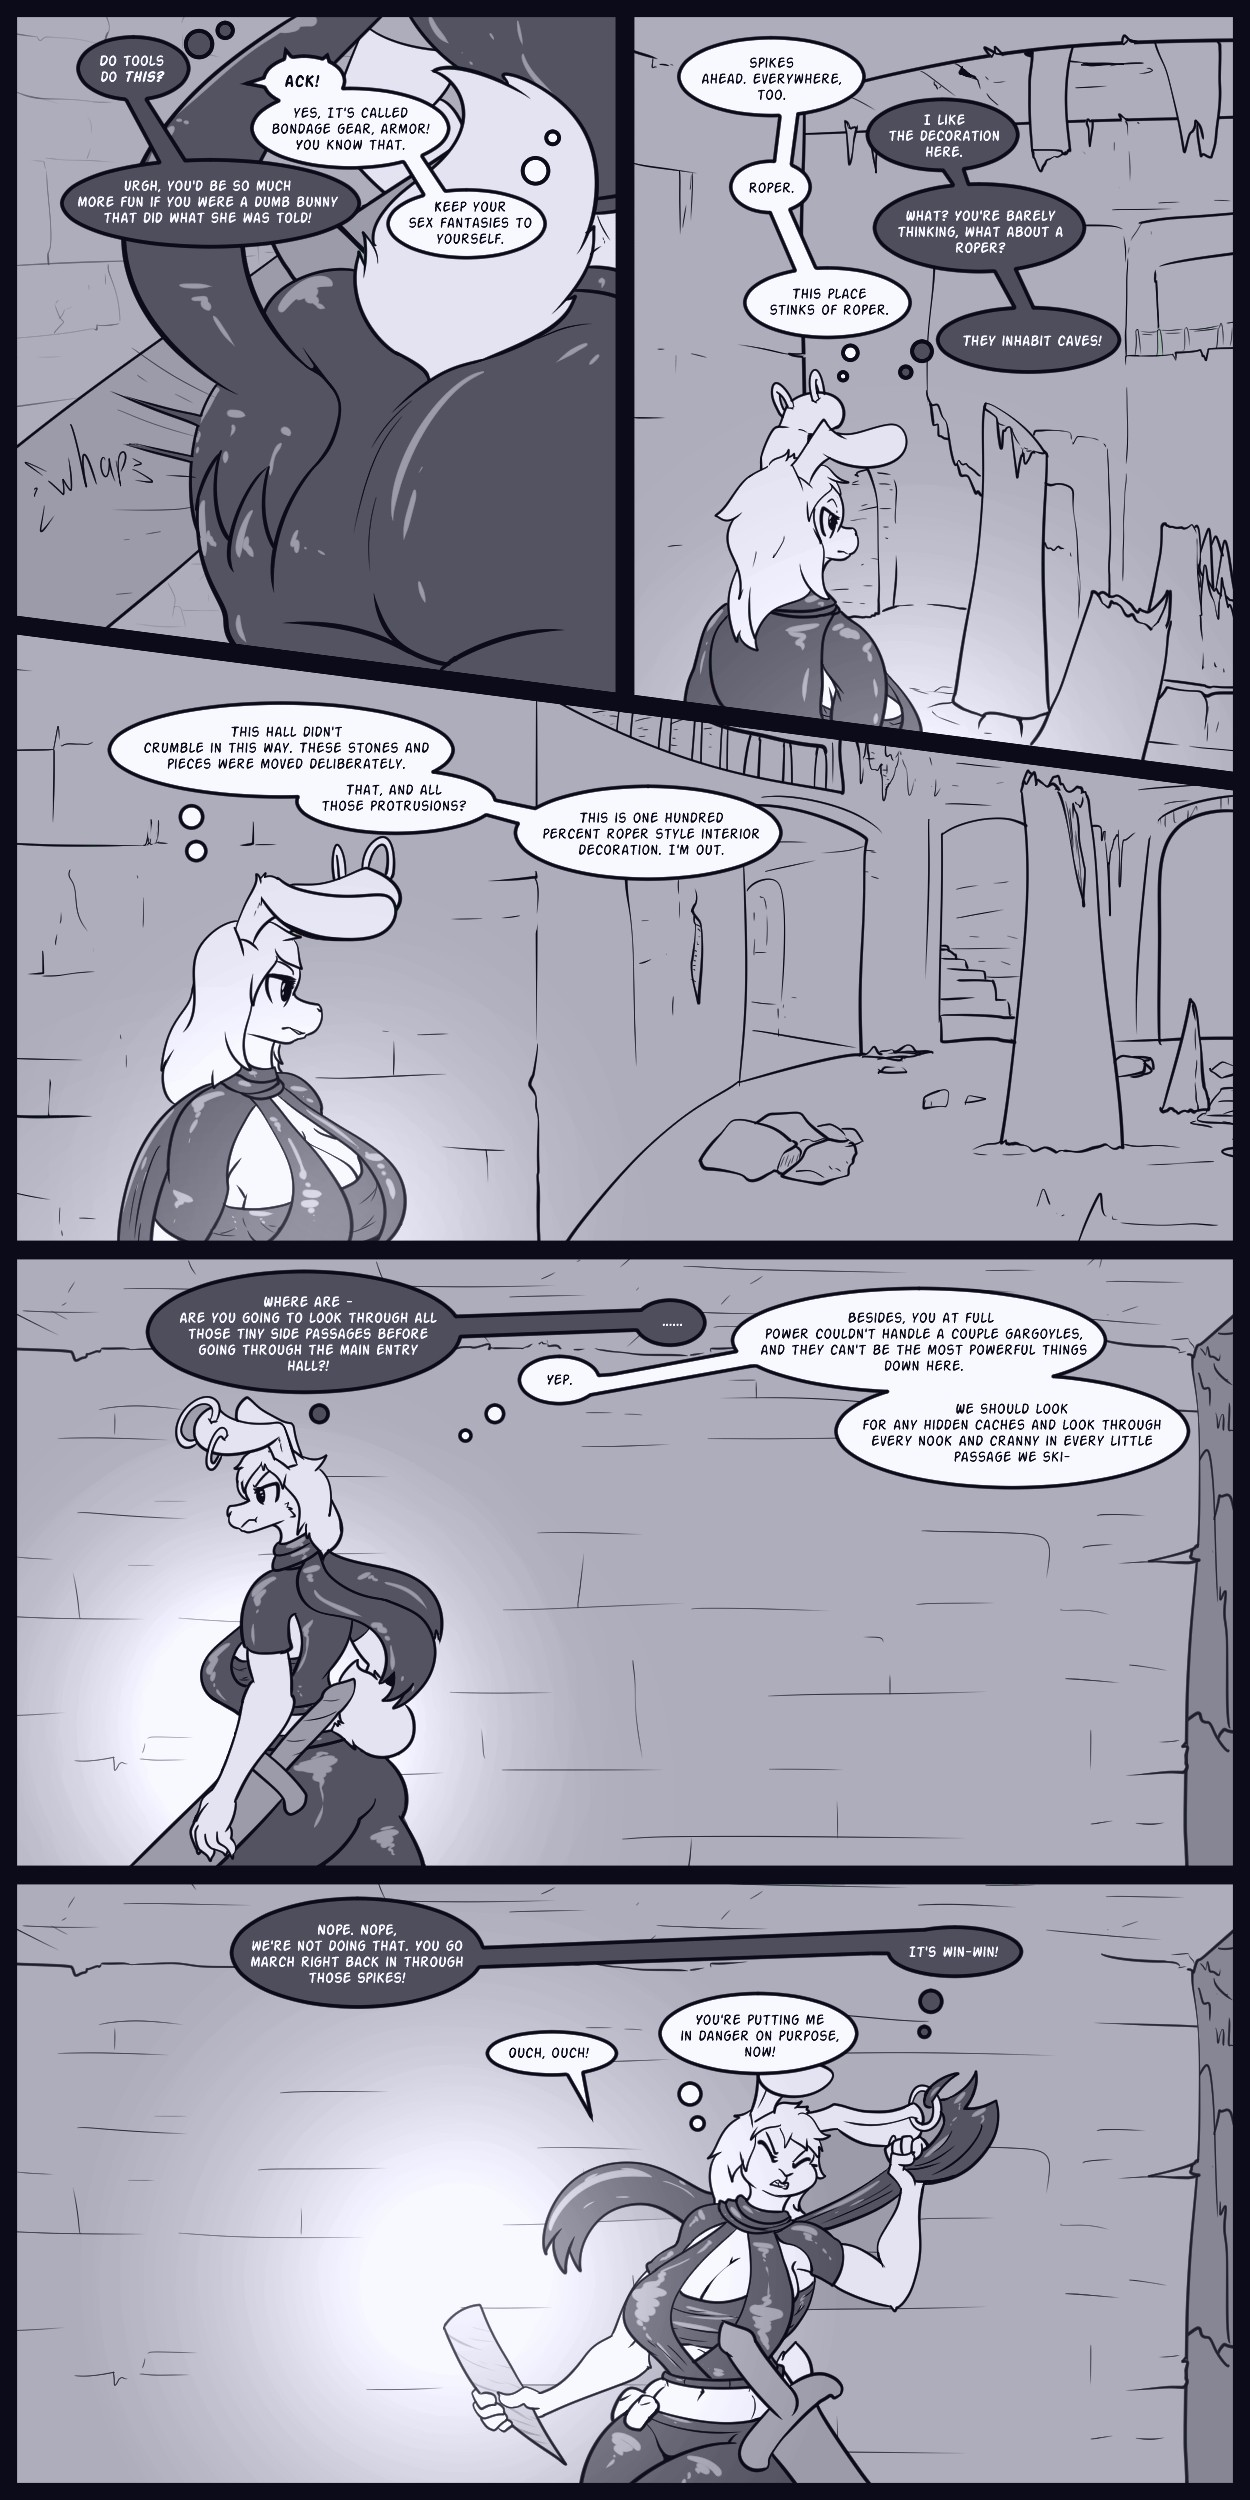 Rough Situation 2 page 03